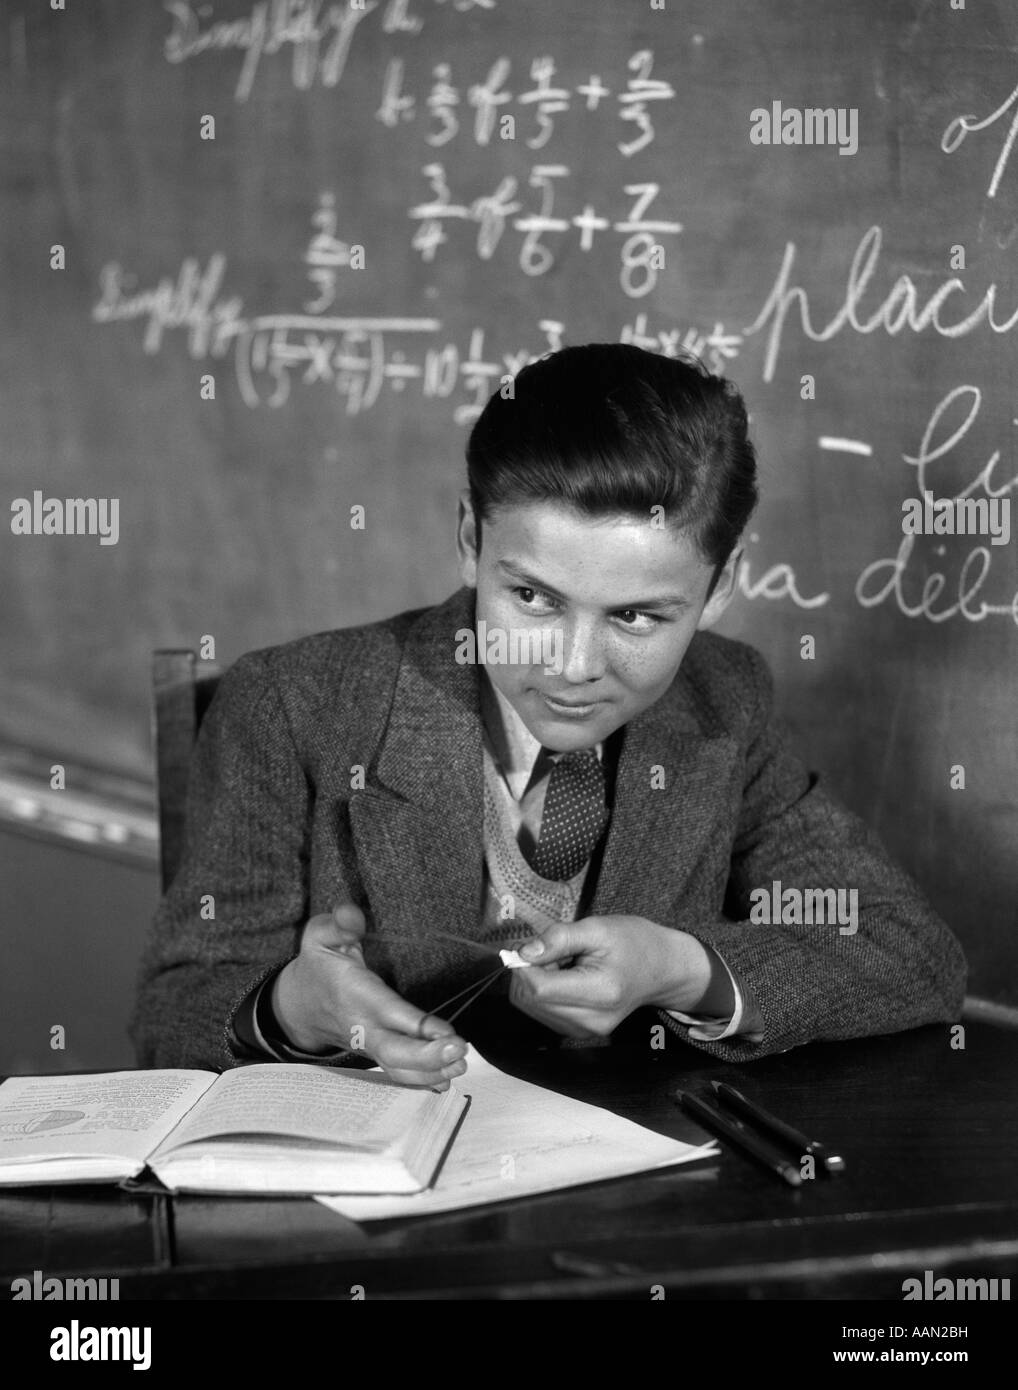 1920s 1930s BOY AT DESK IN CLASSROOM IN FRONT OF BLACKBOARD SHOOTING PAPER WAD WITH RUBBER BAND - Stock Image